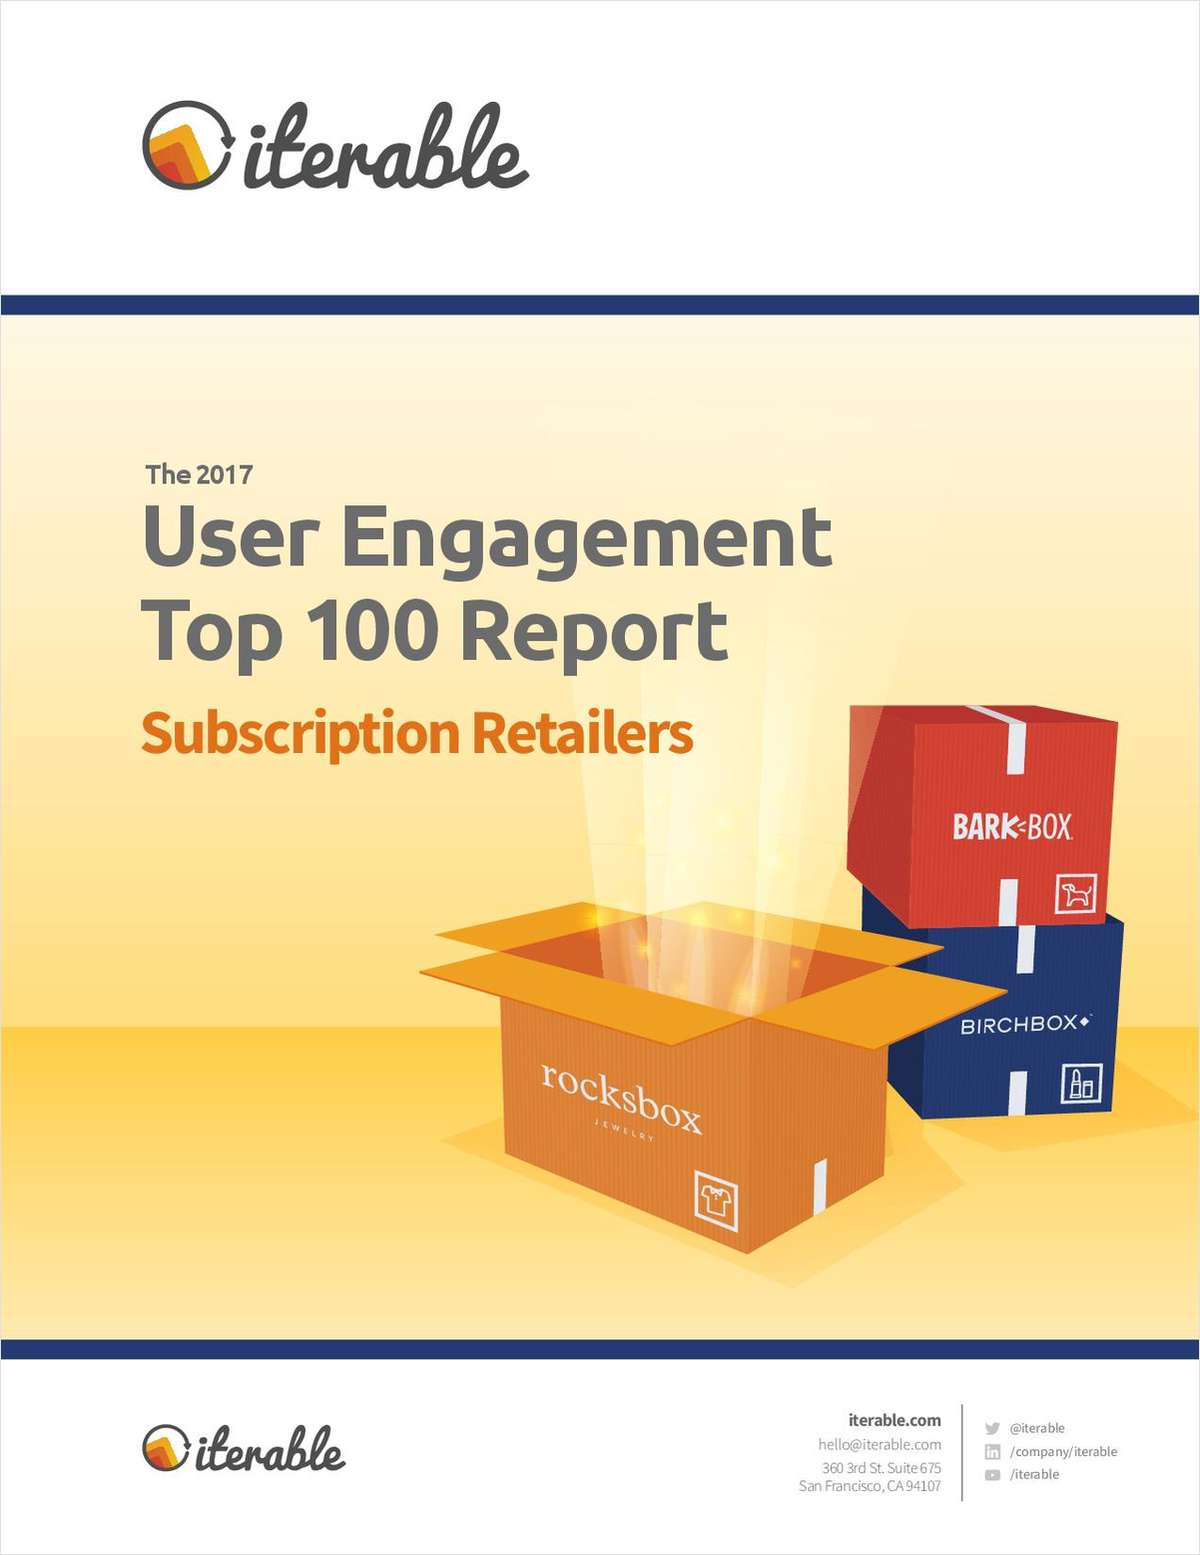 User Engagement Top 100: Subscription Retailers